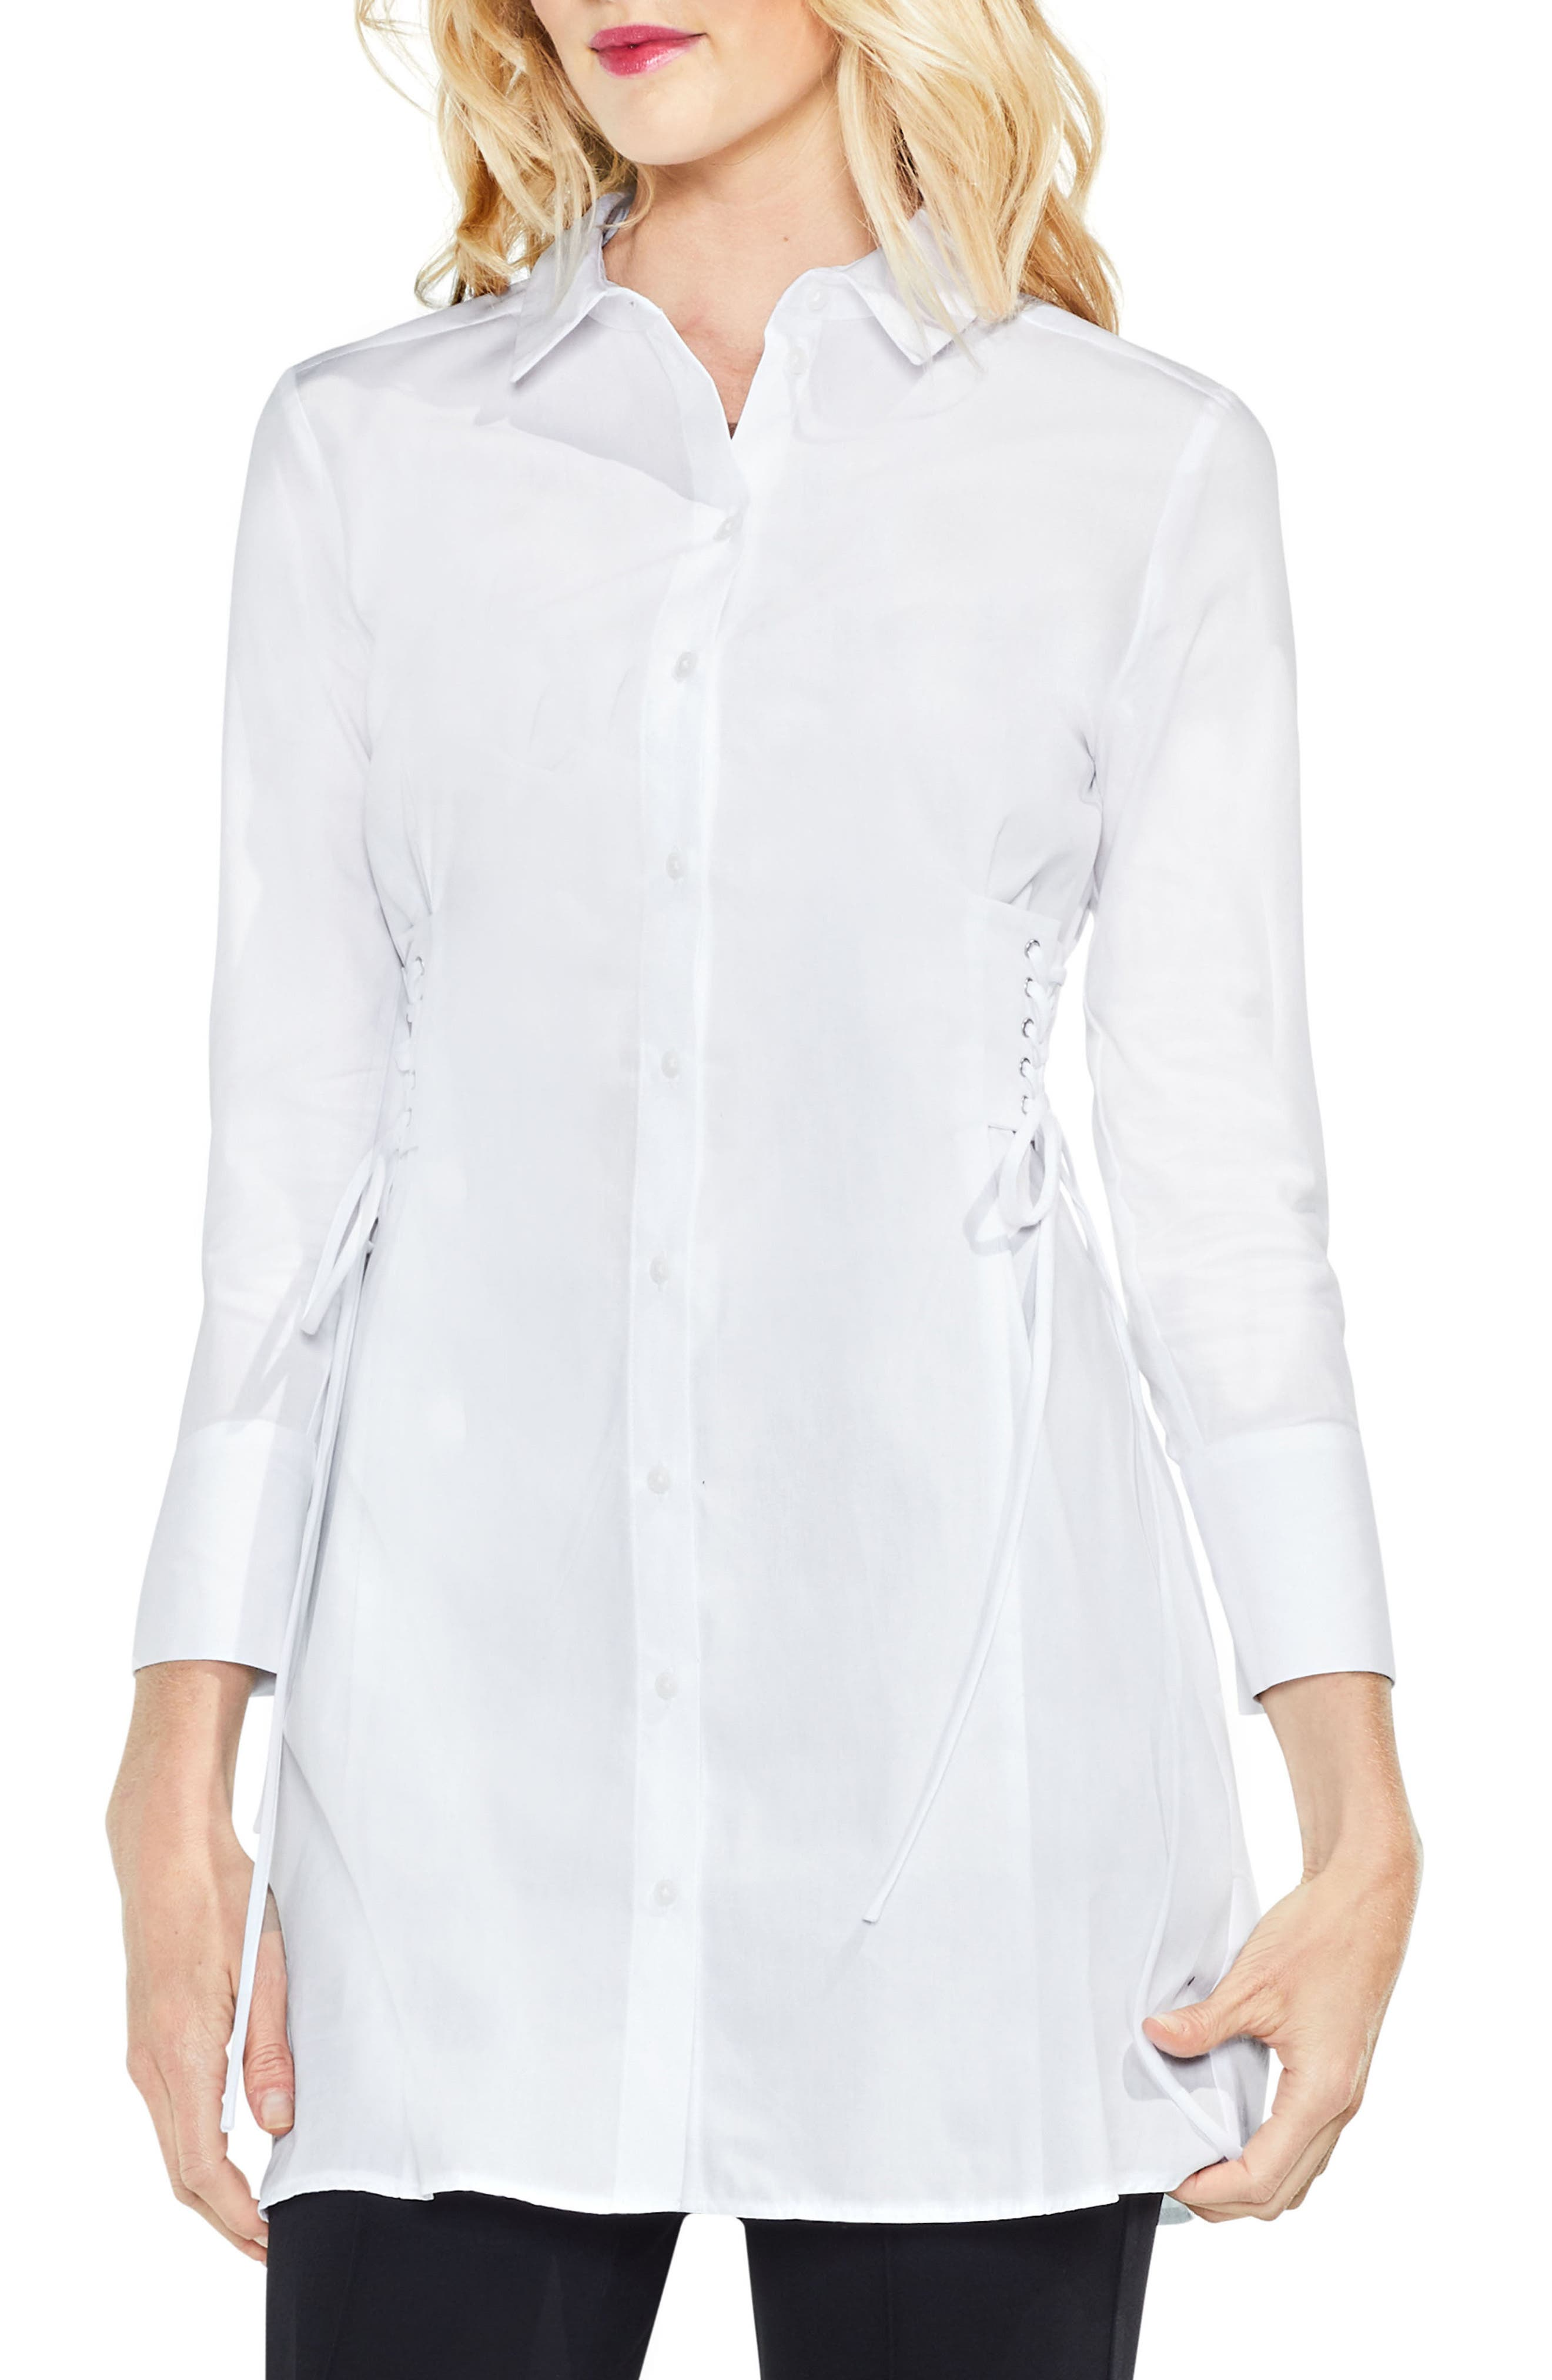 Alternate Image 1 Selected - Vince Camuto Side Lace-Up Tunic Shirt